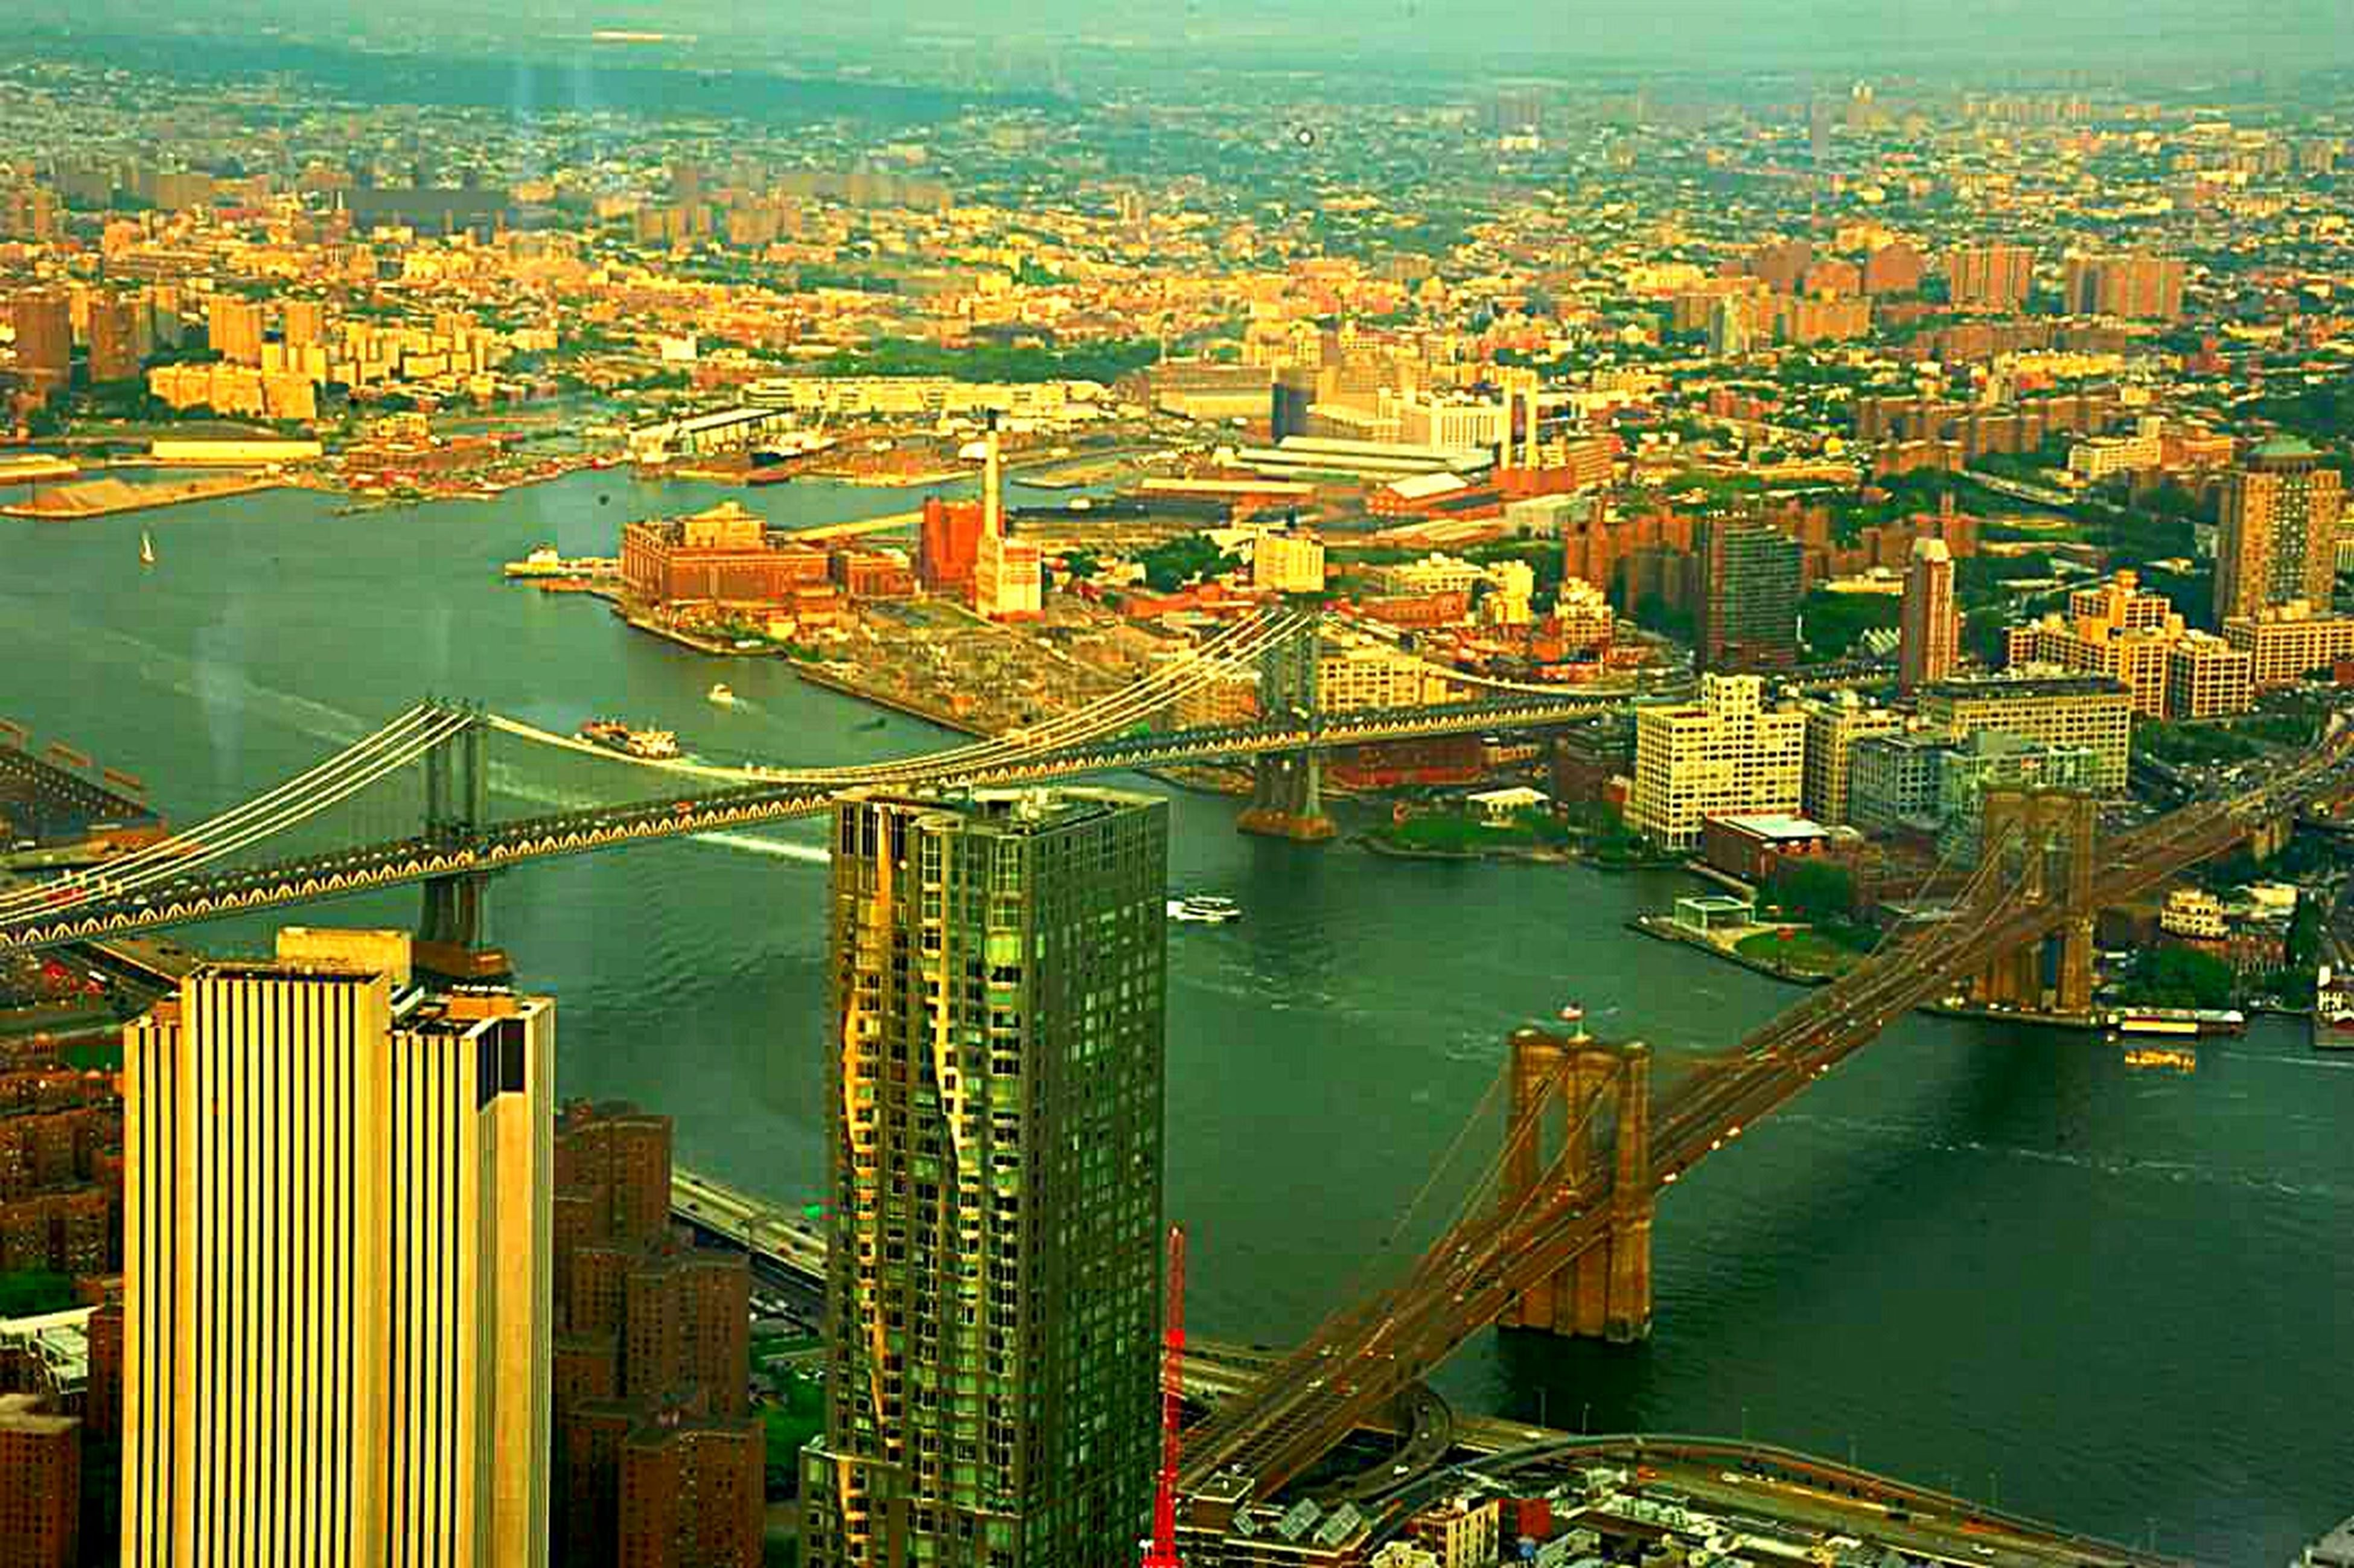 architecture, built structure, city, building exterior, cityscape, high angle view, water, bridge - man made structure, aerial view, river, connection, capital cities, travel destinations, famous place, transportation, illuminated, crowded, city life, travel, engineering